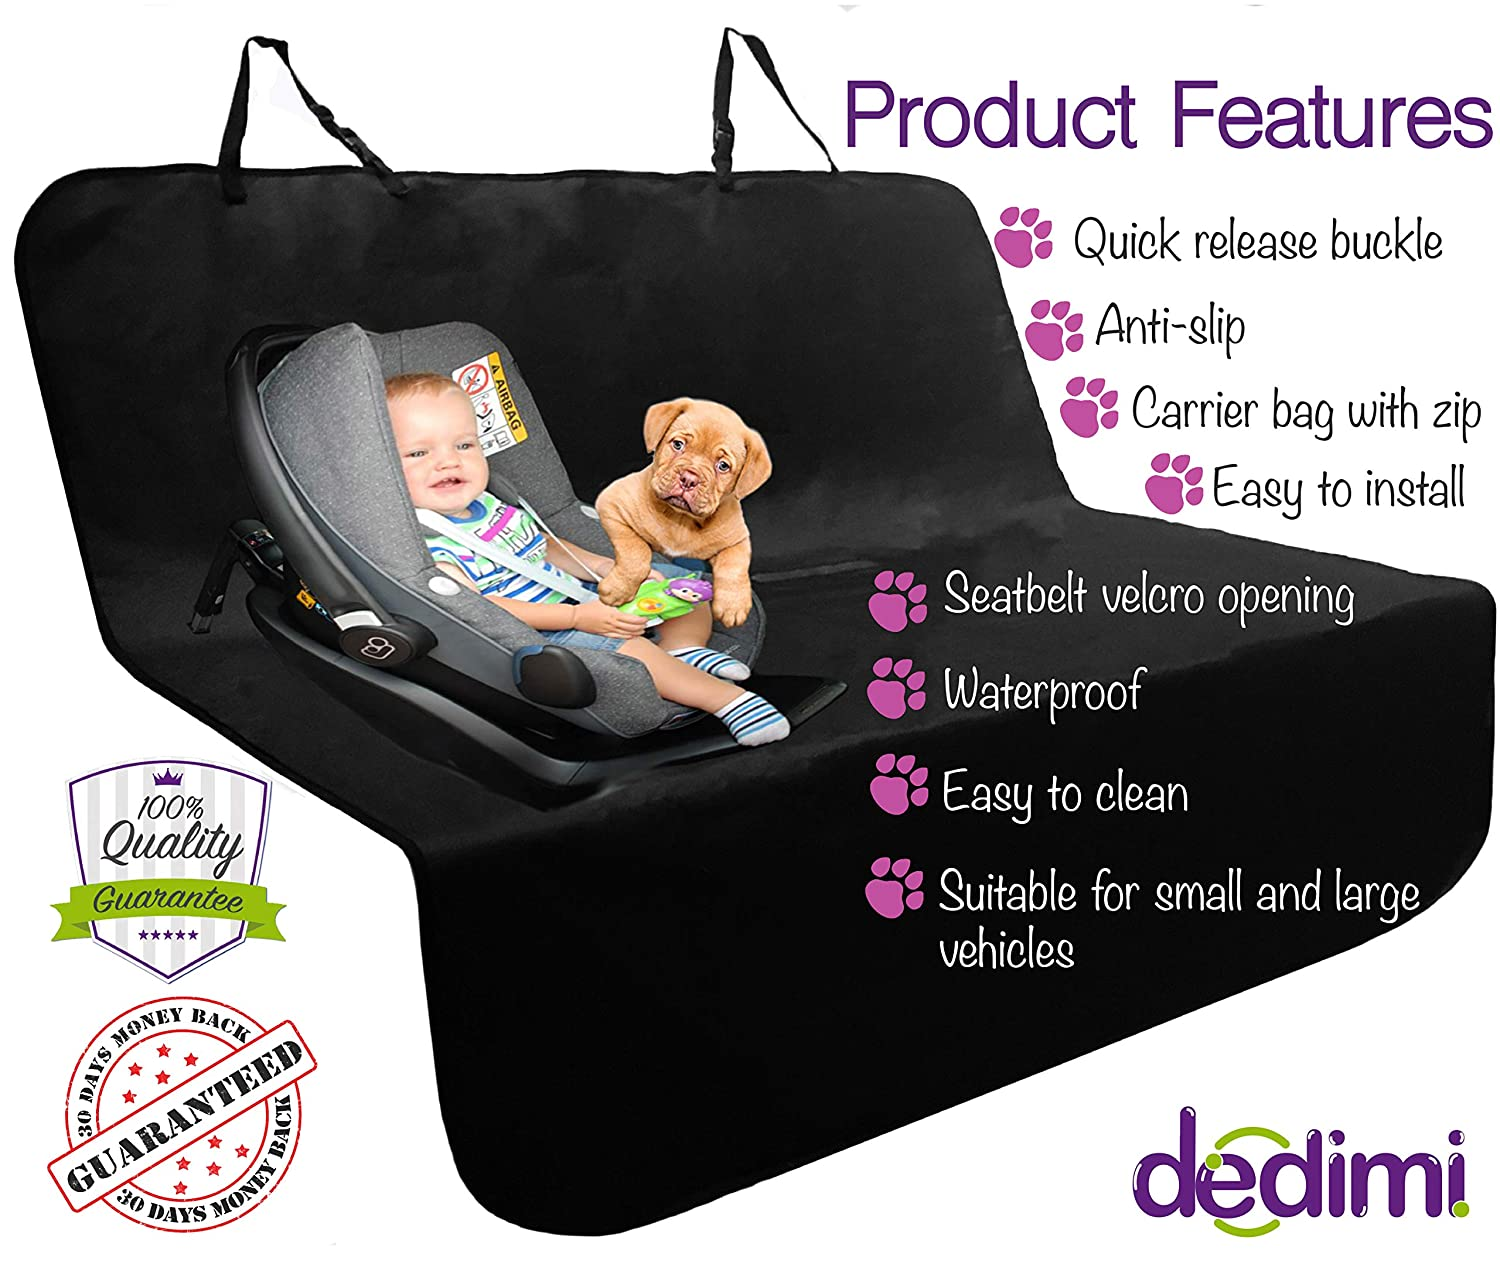 Dedimi Dog Car Seat Covers Pet Cover Backseat Rear Protector black Accessories for Pets Kids Waterproof Durable Nonslip Scratch Proof Washable for Small Cars Caravans Trucks SUV